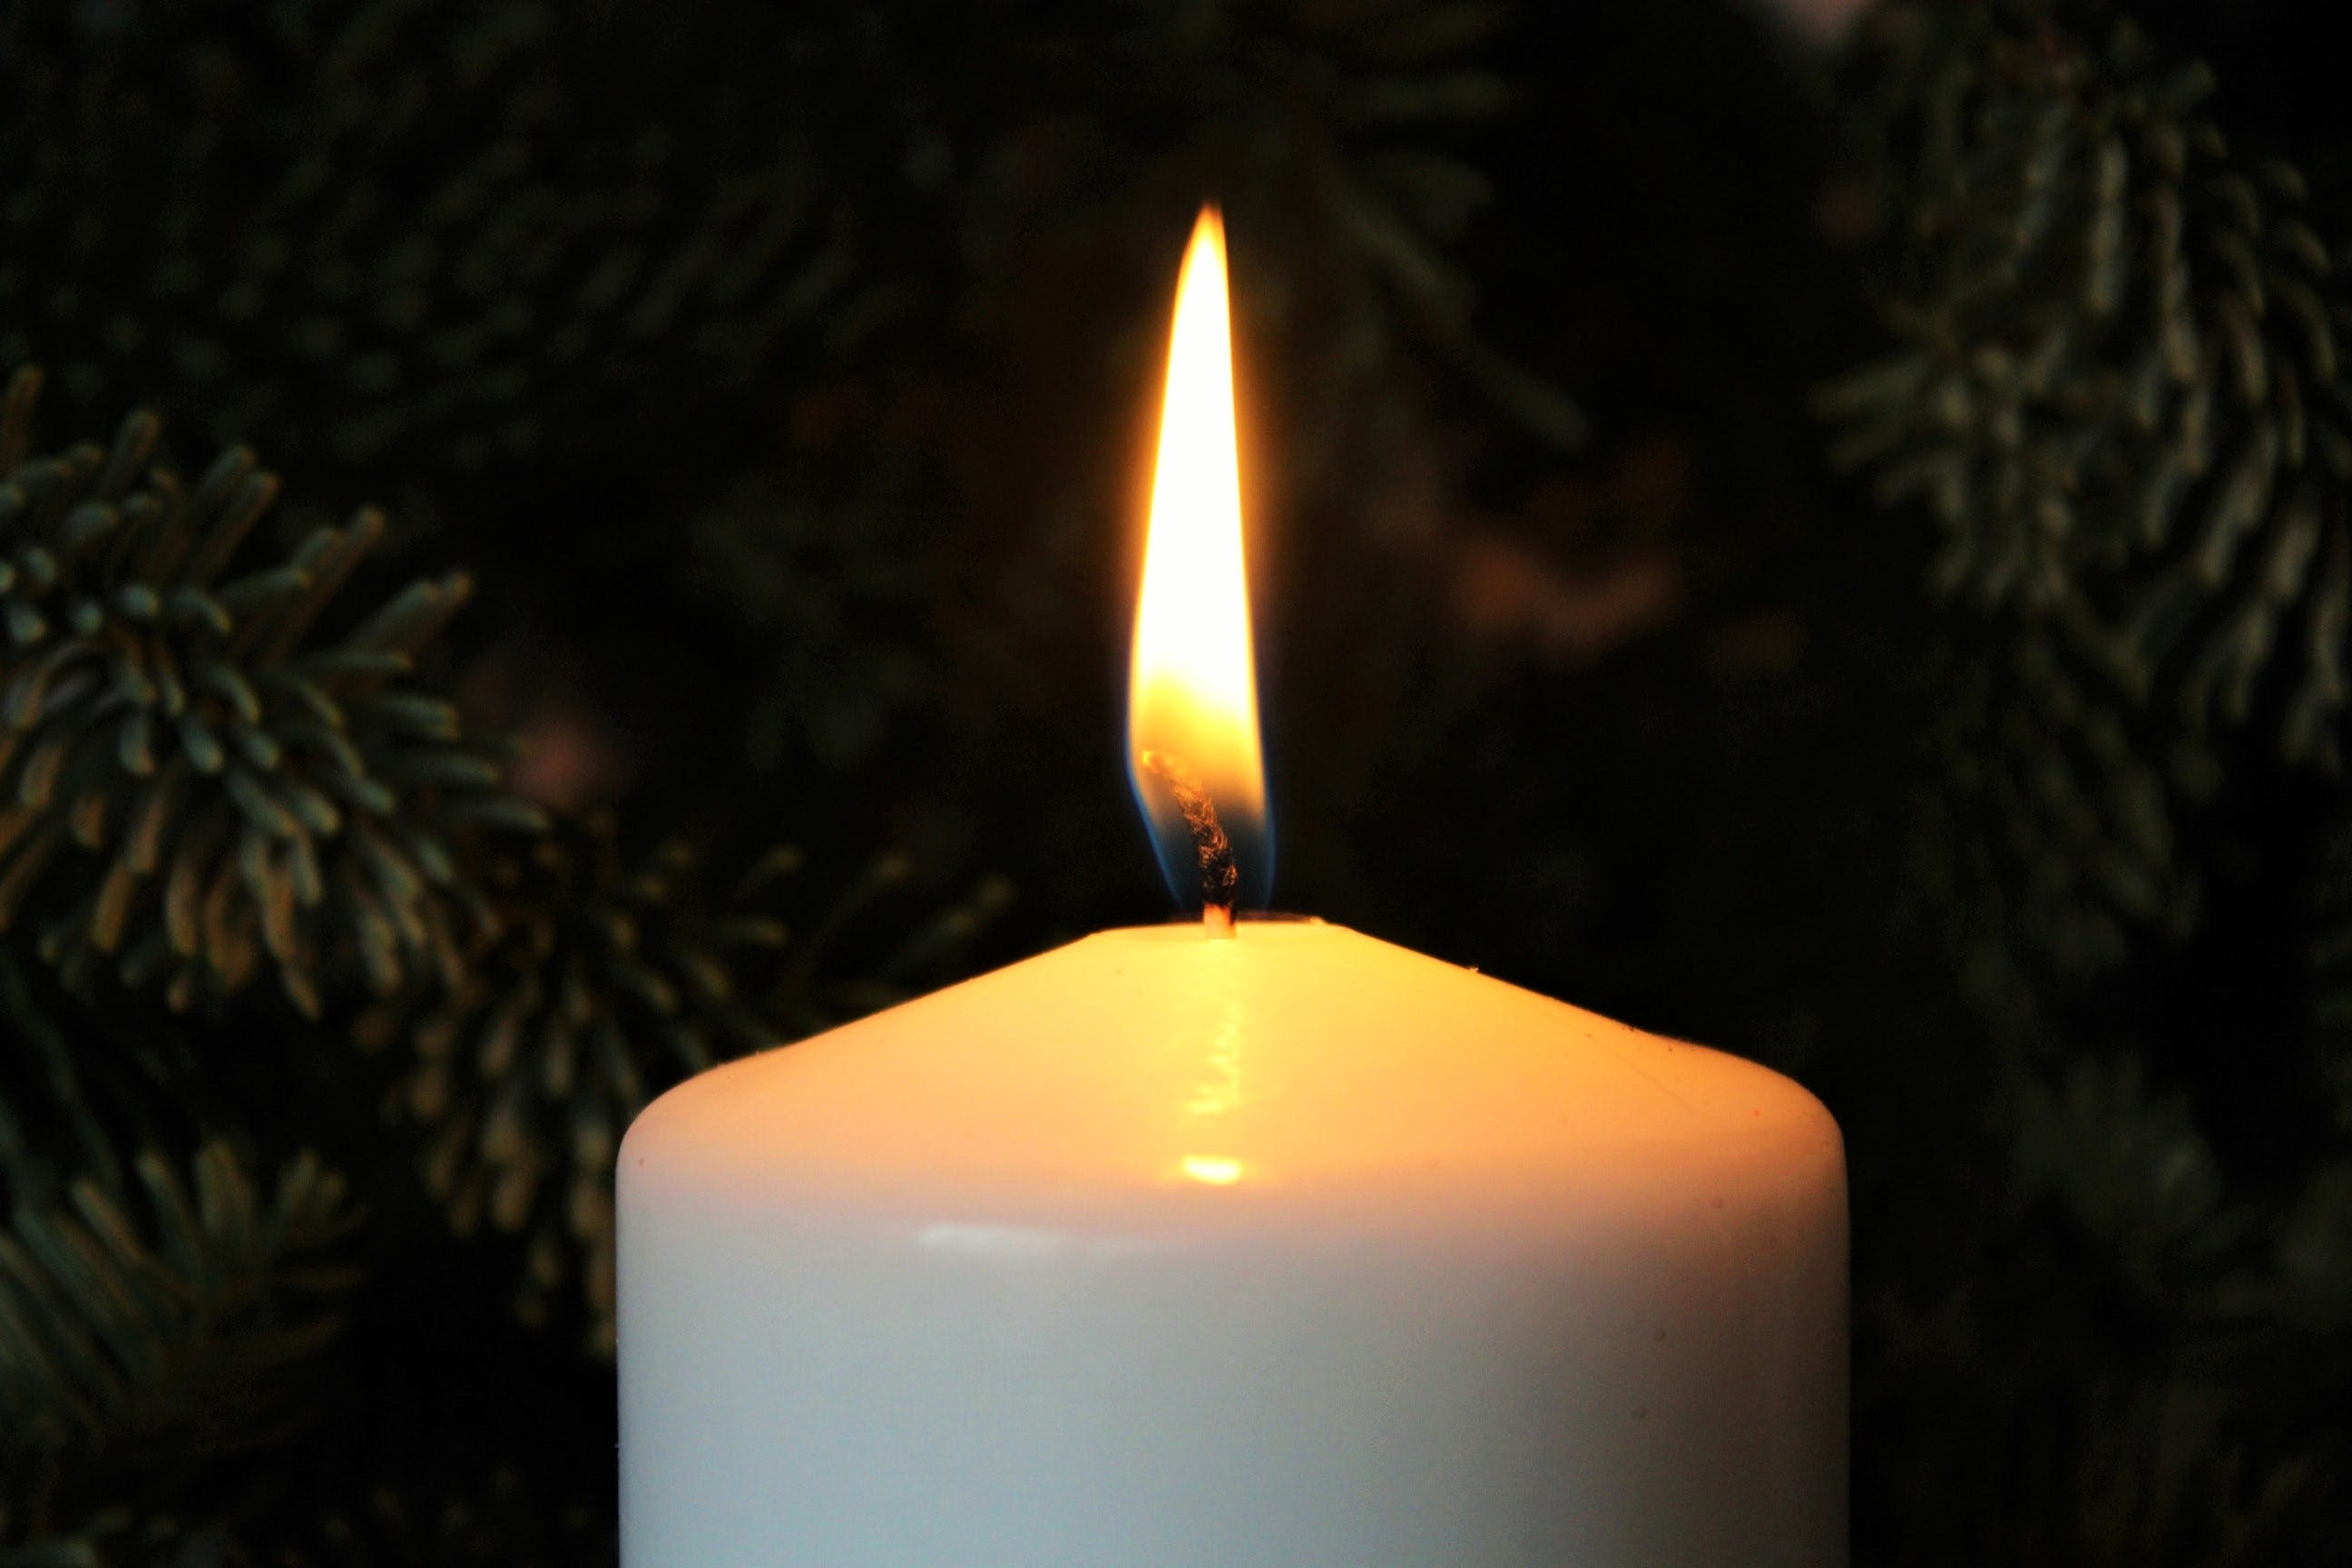 Free stock photo of candlelight, candle, flame, illuminated